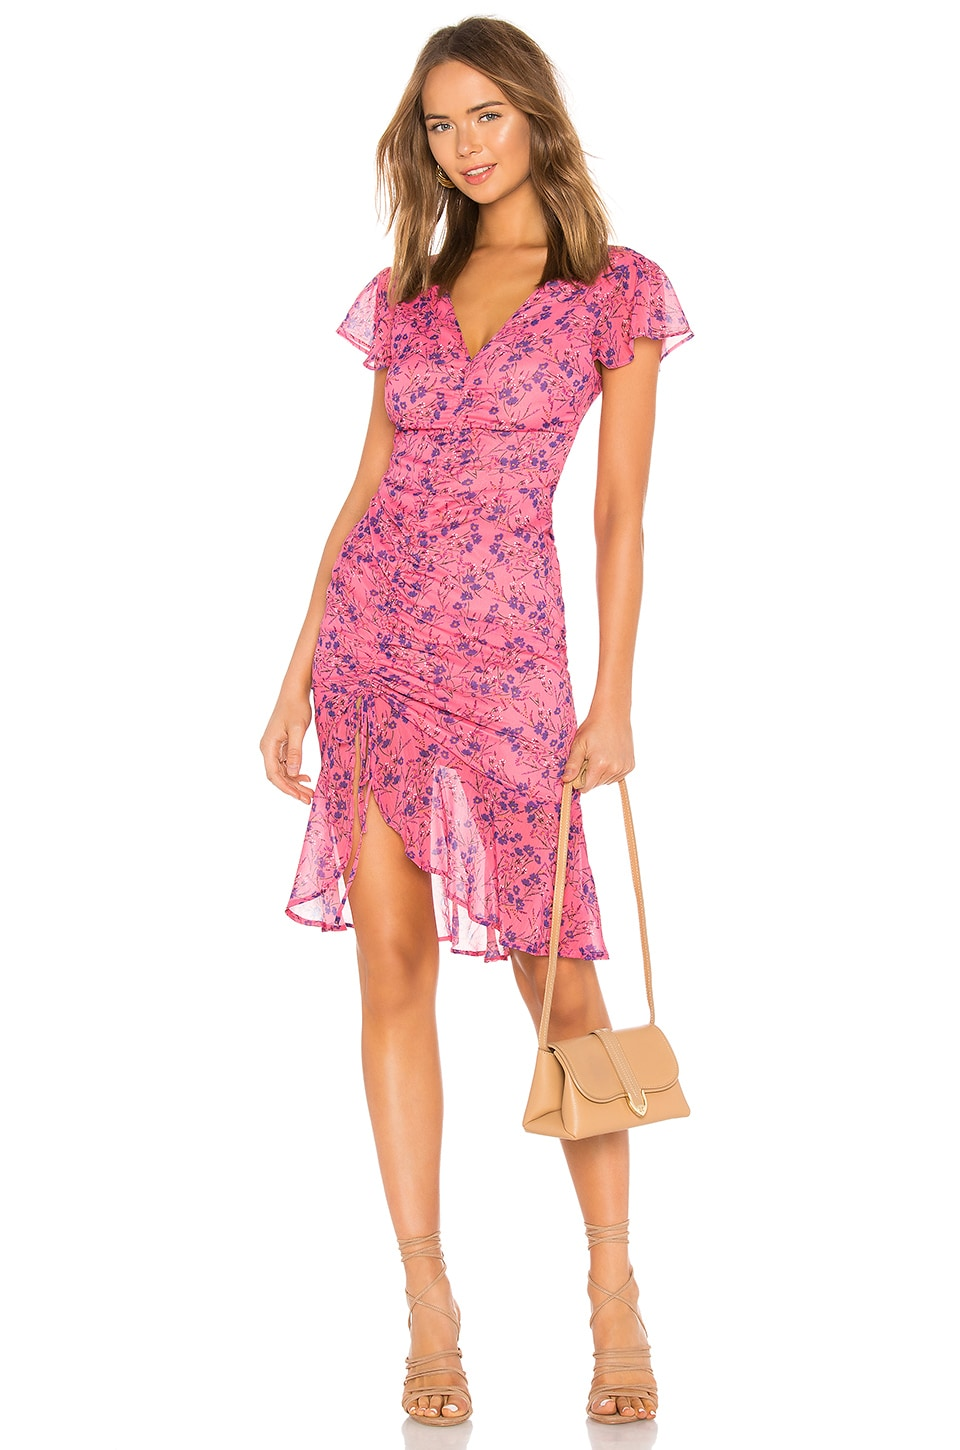 Elaine Midi Dress                   MAJORELLE                                                                                                                             CA$ 232.78 10